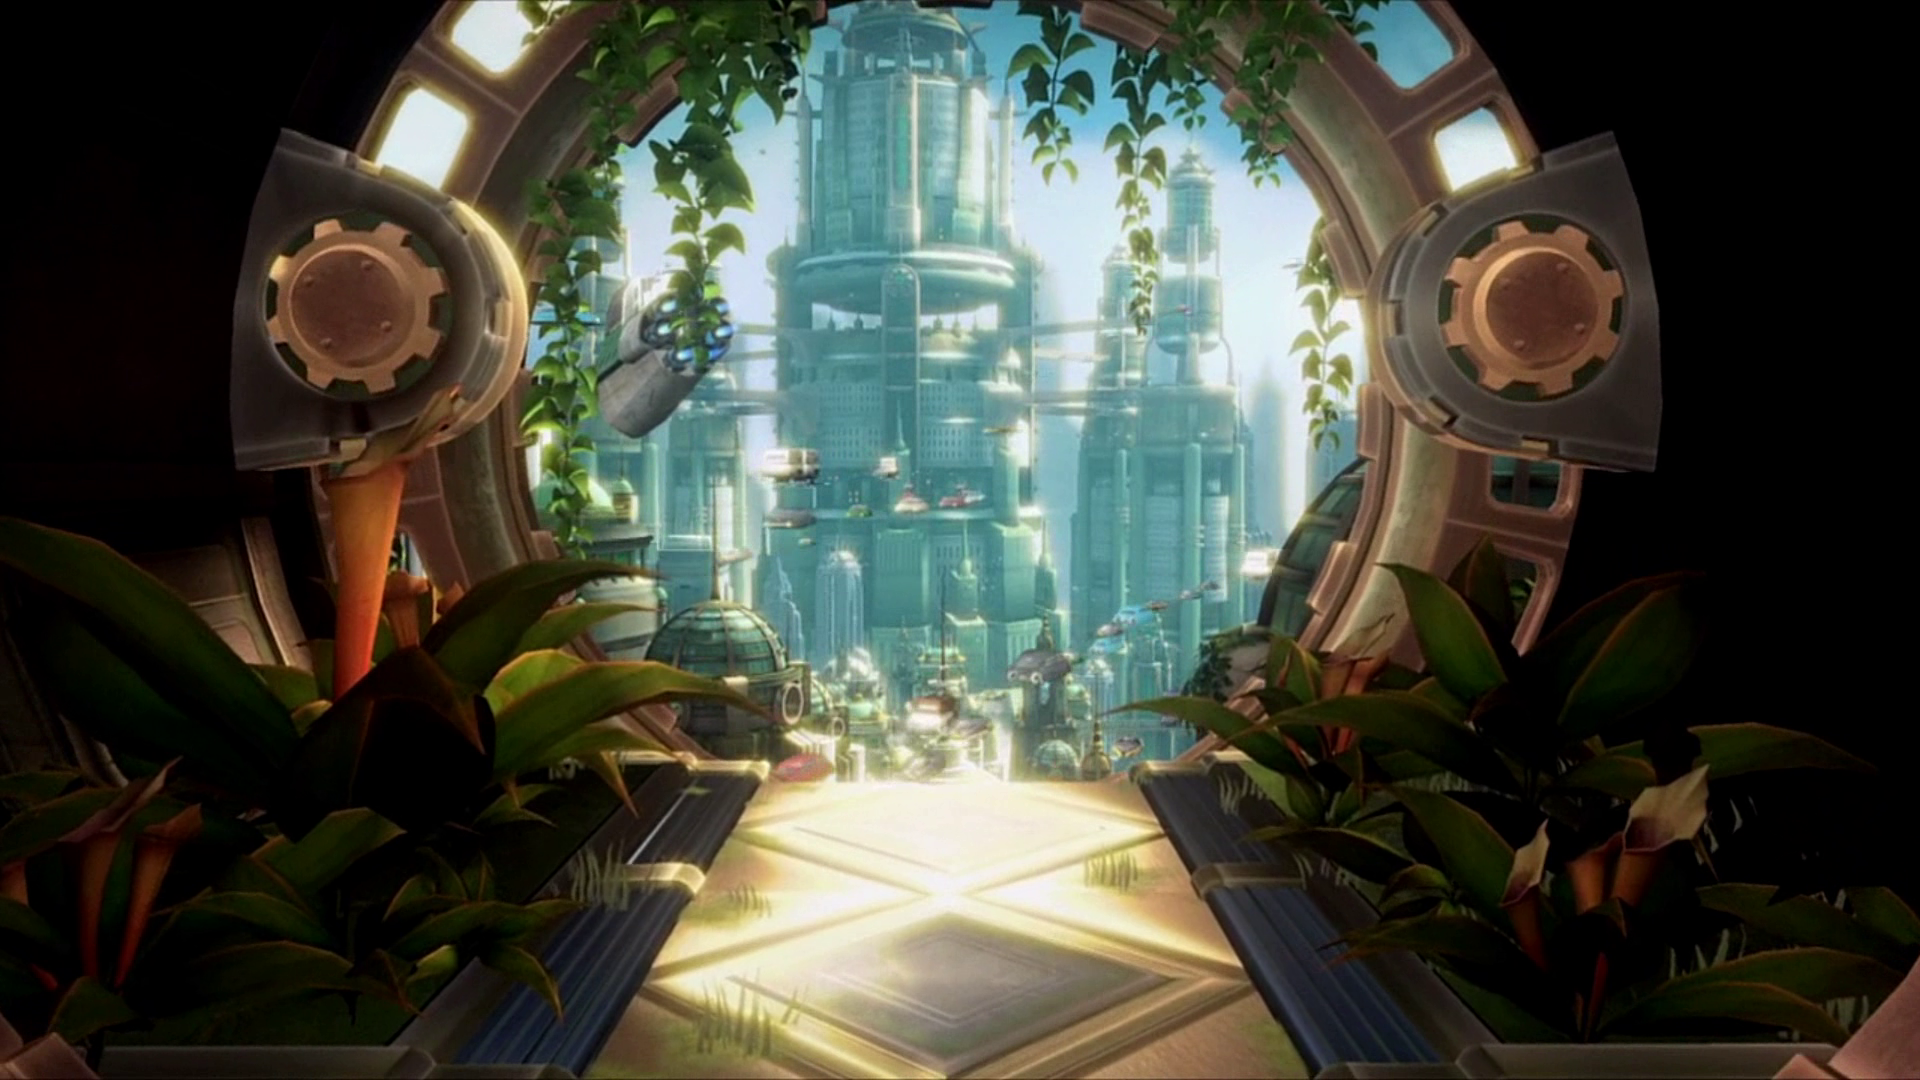 Ratchet And Clank Metropolis Animated Wallpaper By S0me 1 On